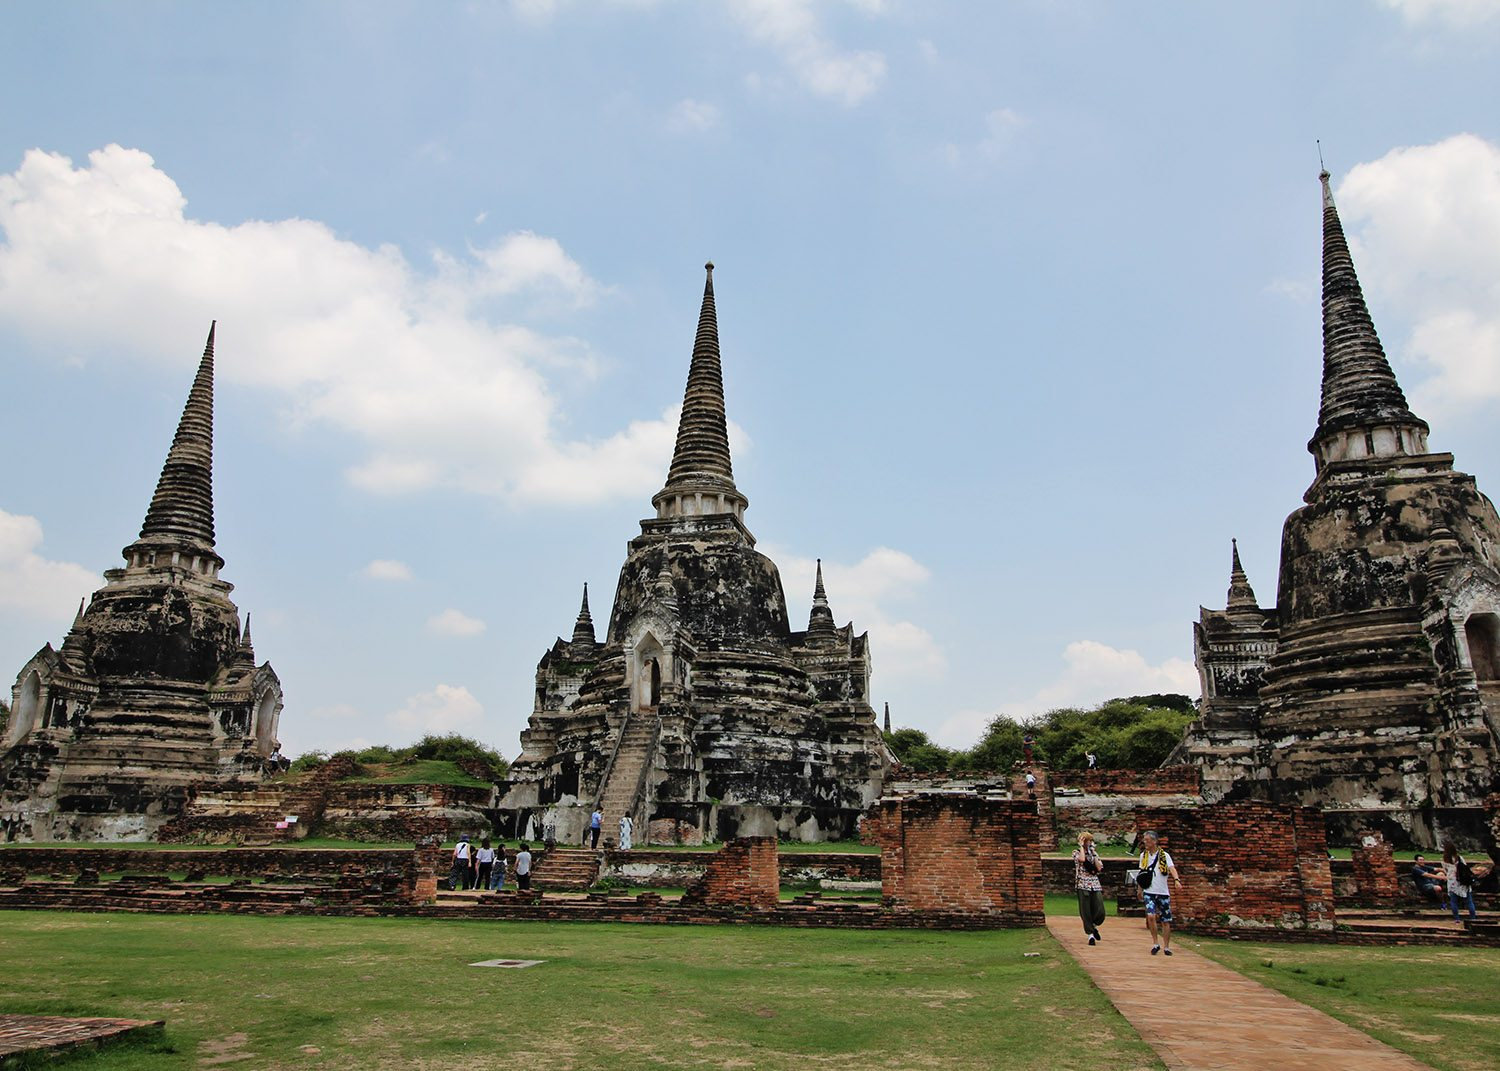 Temple in Ayutthaya